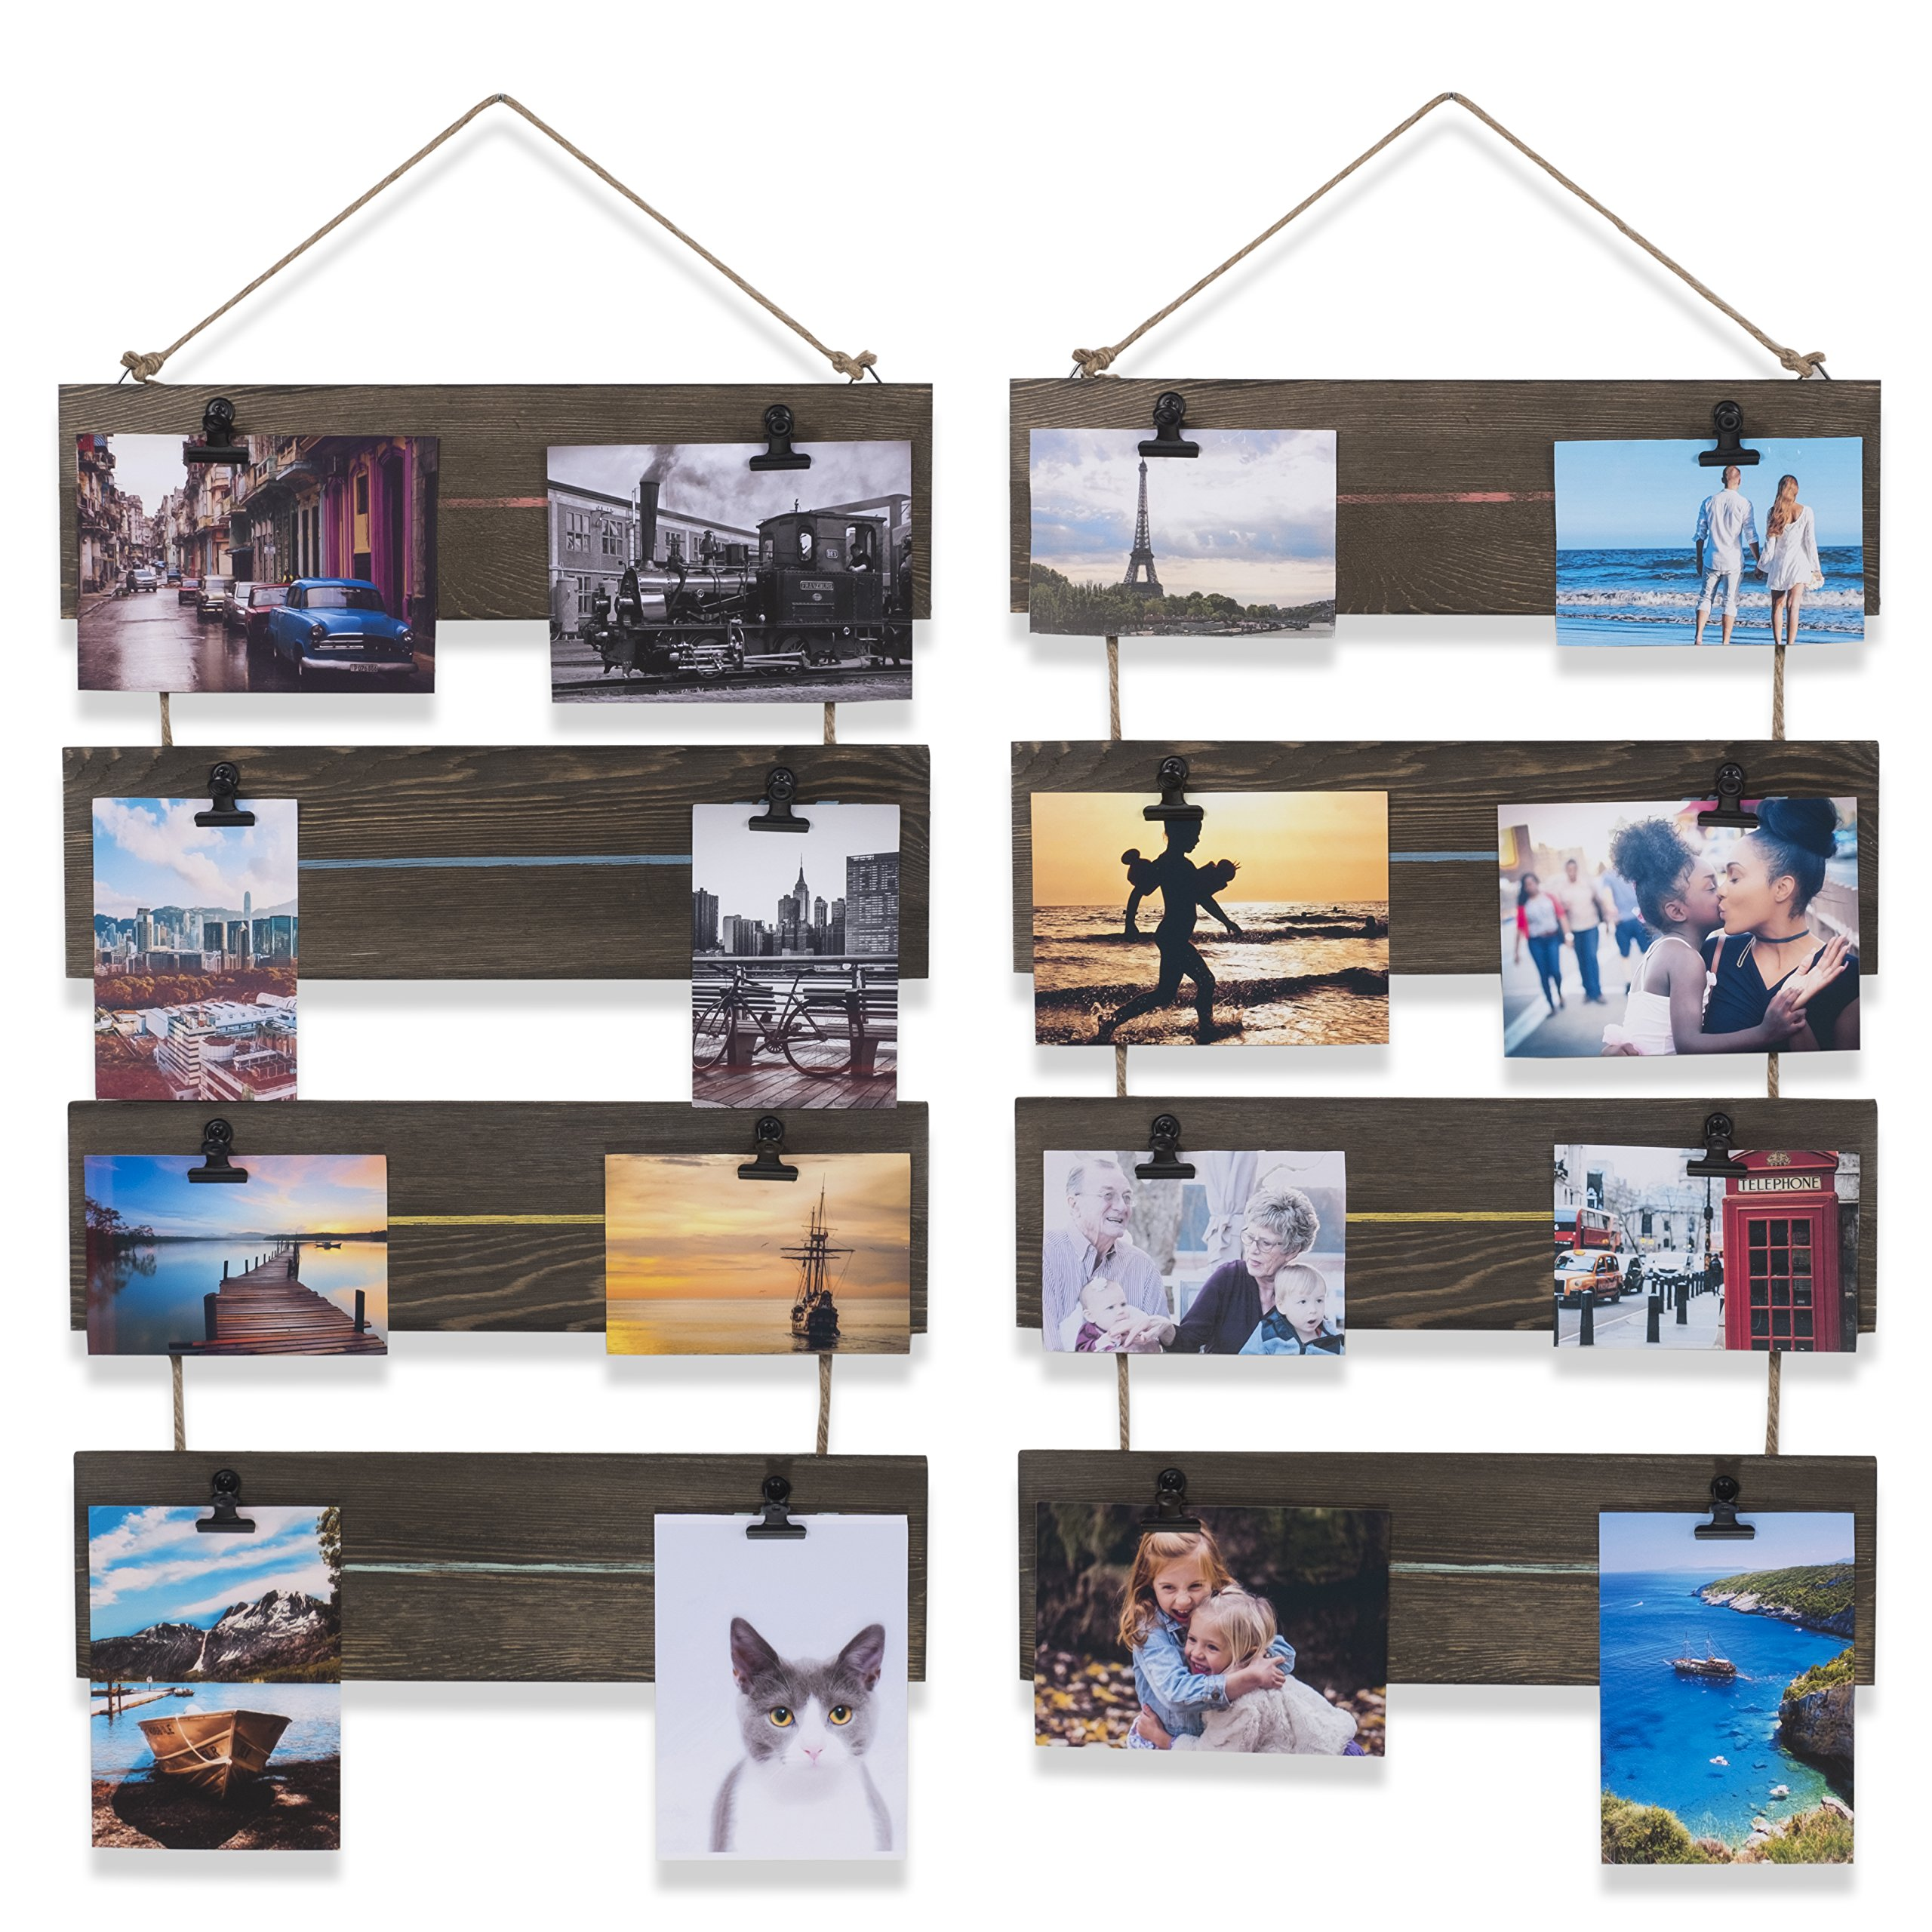 brightmaison Picture Photo Display Clip Board 26 Inch Wood Wall Decor with 16 Clips Collage Artworks Prints Multi Pictures Hanging Vertical Organizer (Set of 2) by brightmaison